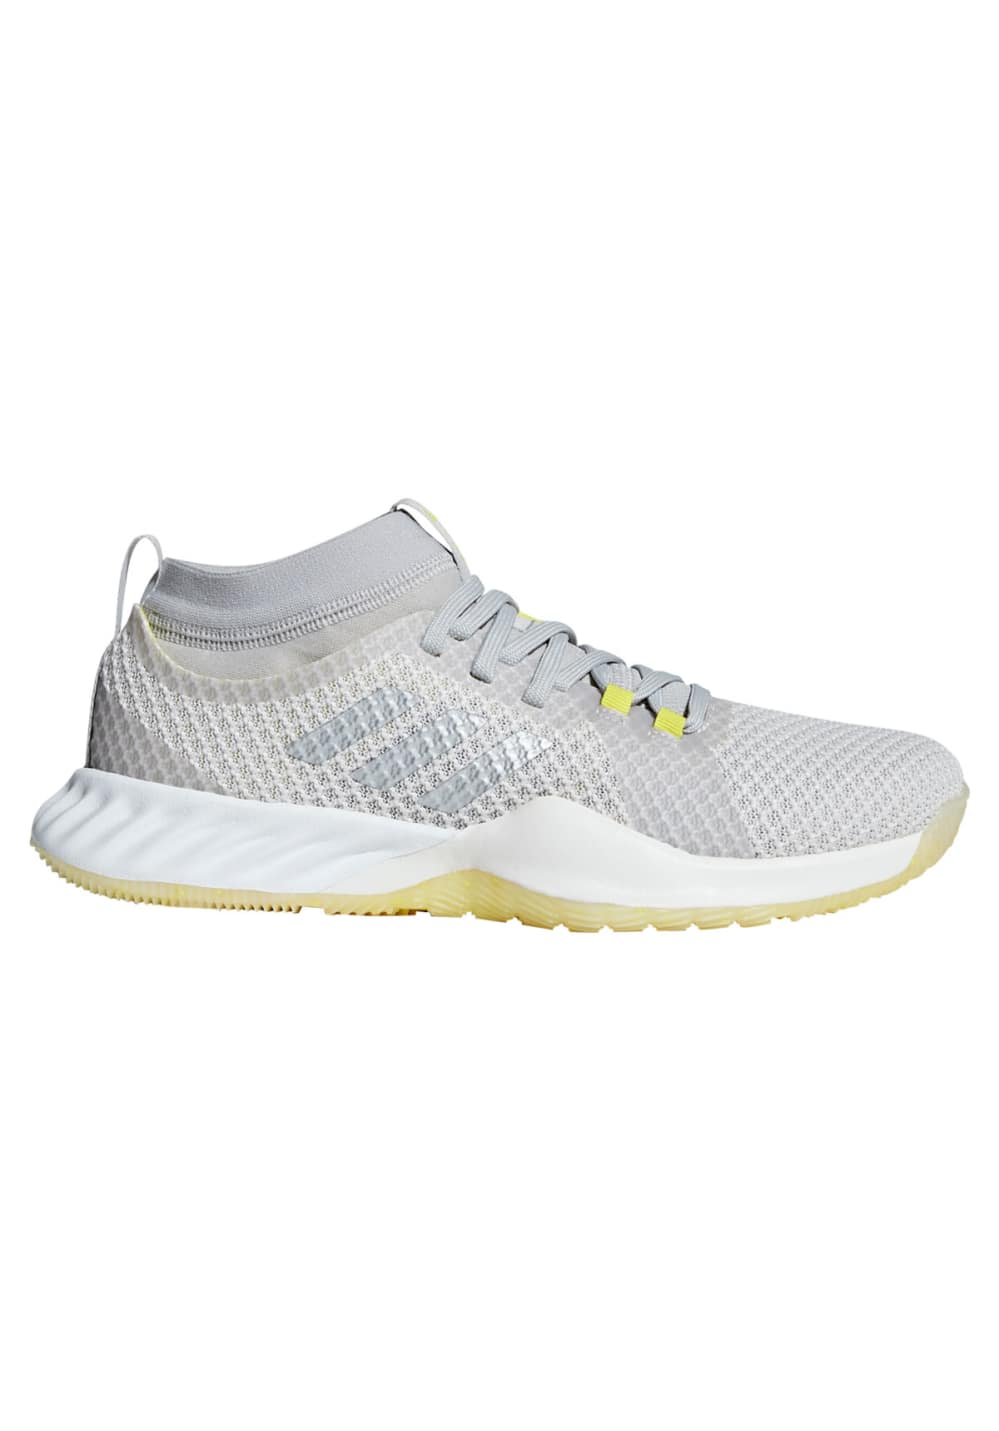 Shoes Women Pro Fitness Crazytrain For Grey 3 Adidas 0 W YWED2H9I